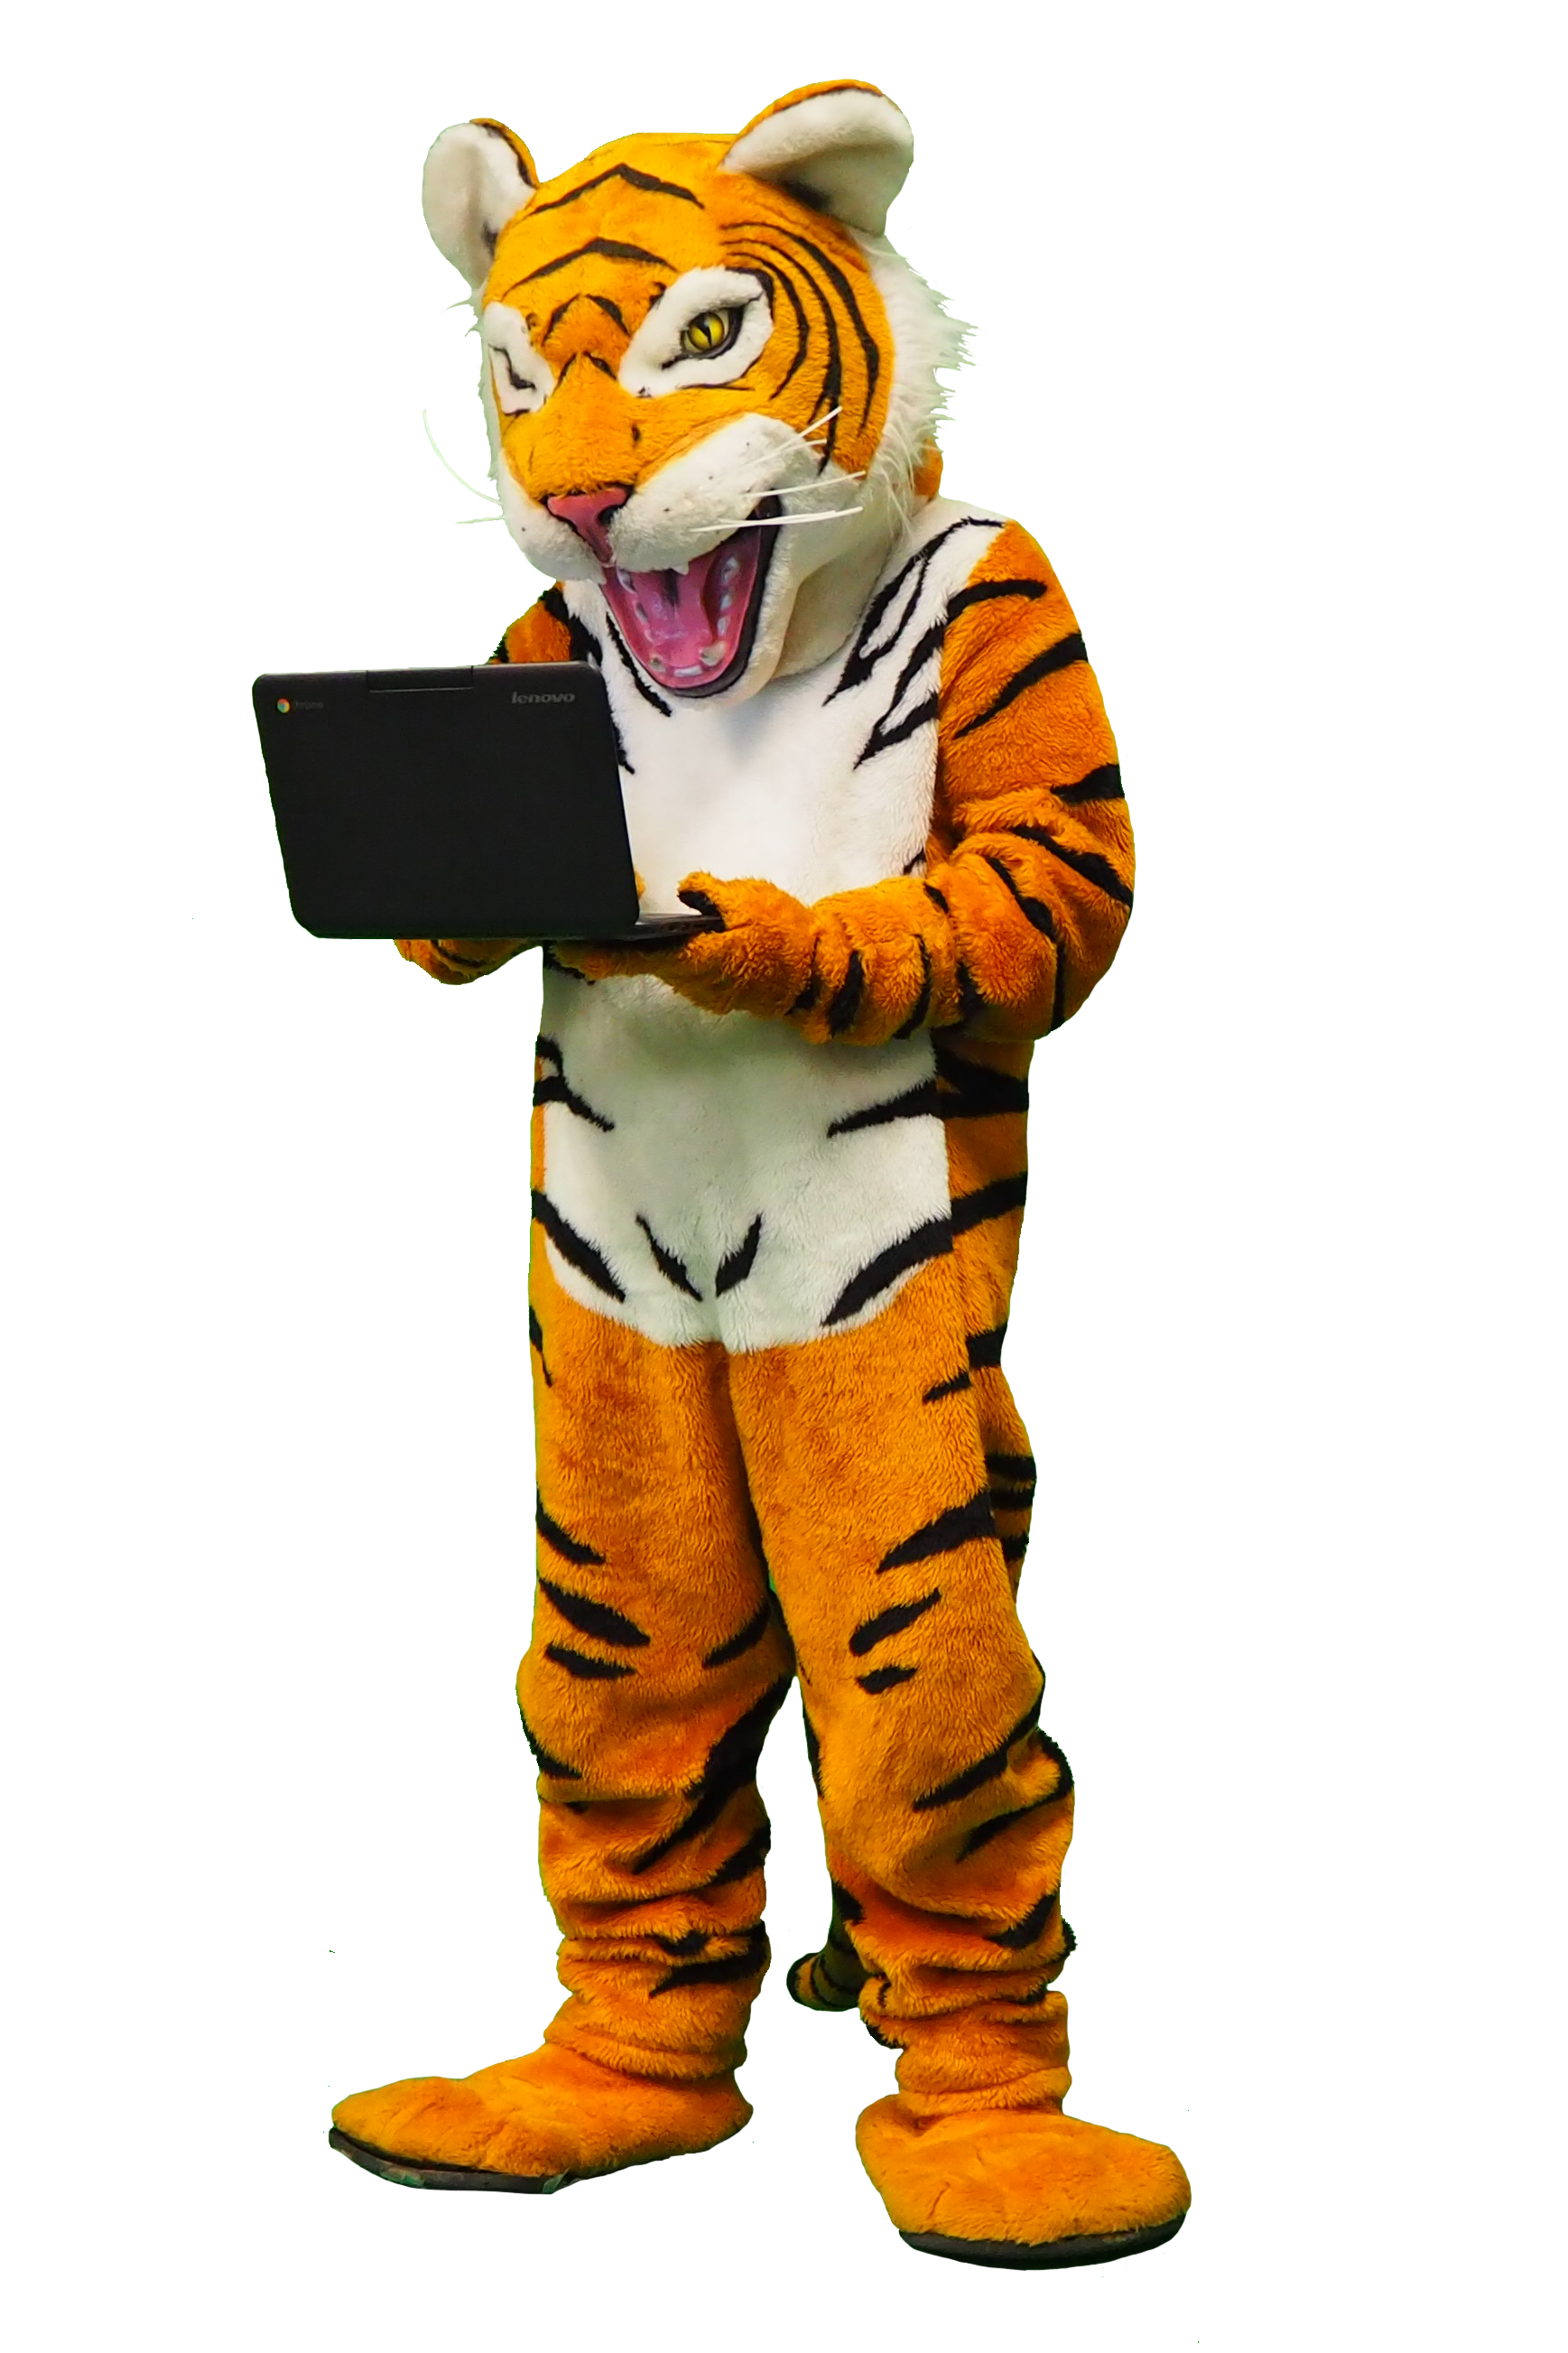 Tiger using a Chromebook